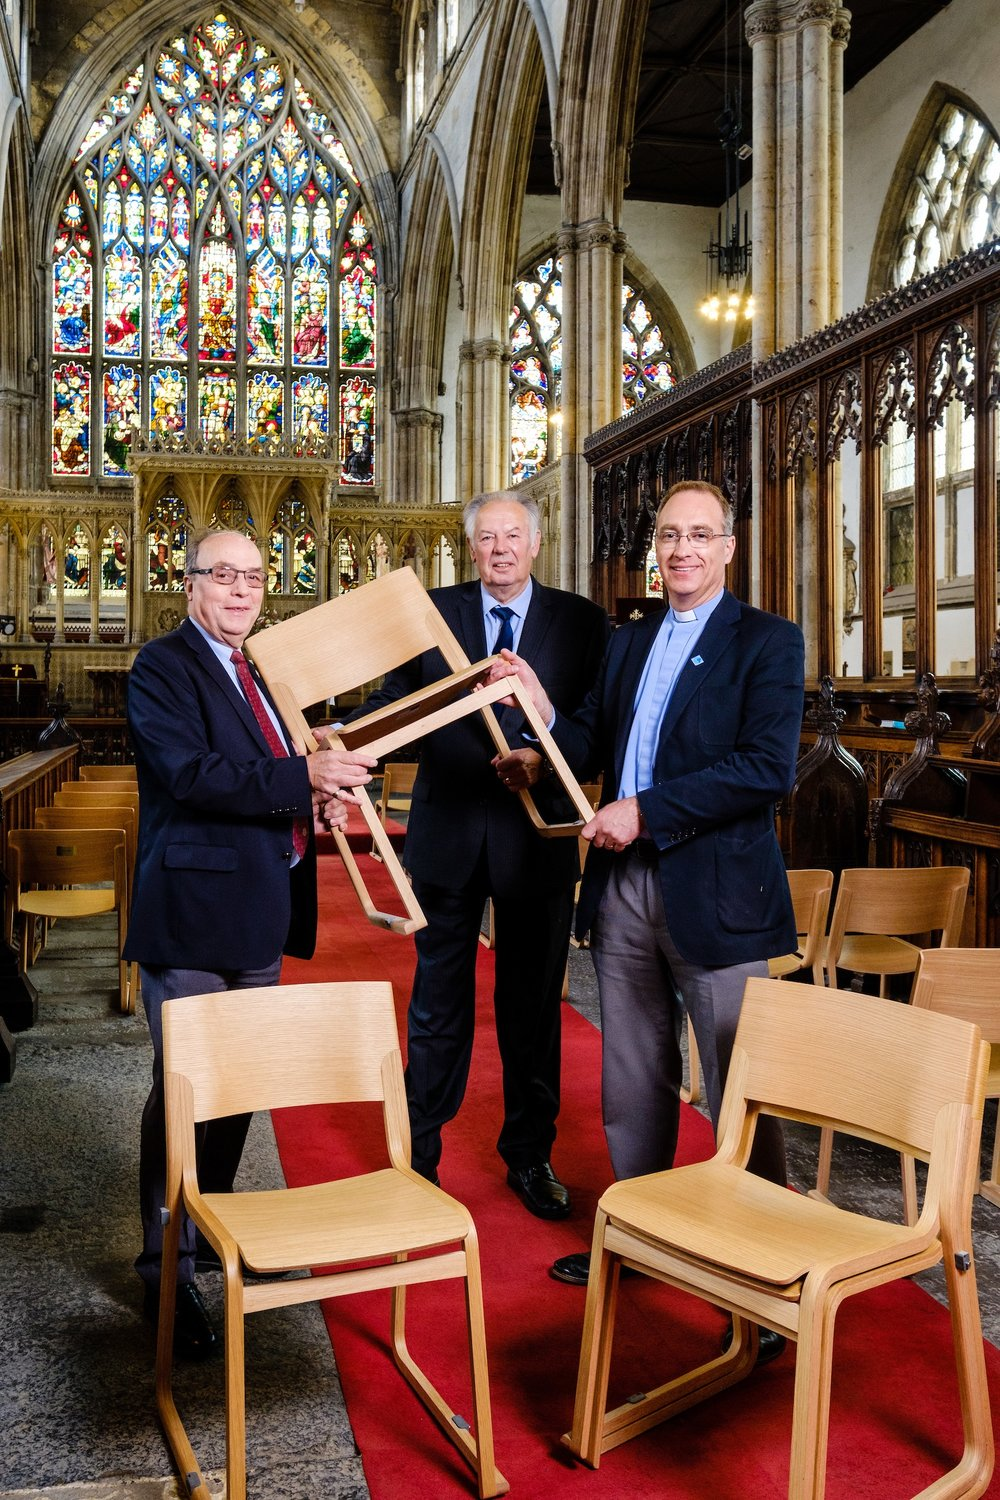 From left, Robin Mason, of the Rotary Club of Hull, Captain Dennis Robinson, of Trinity House, and the Vicar of Hull Minster, Neal Barnes, with the new chairs providing elegant and comfortable seating as part of the transformation of the magnificent church.